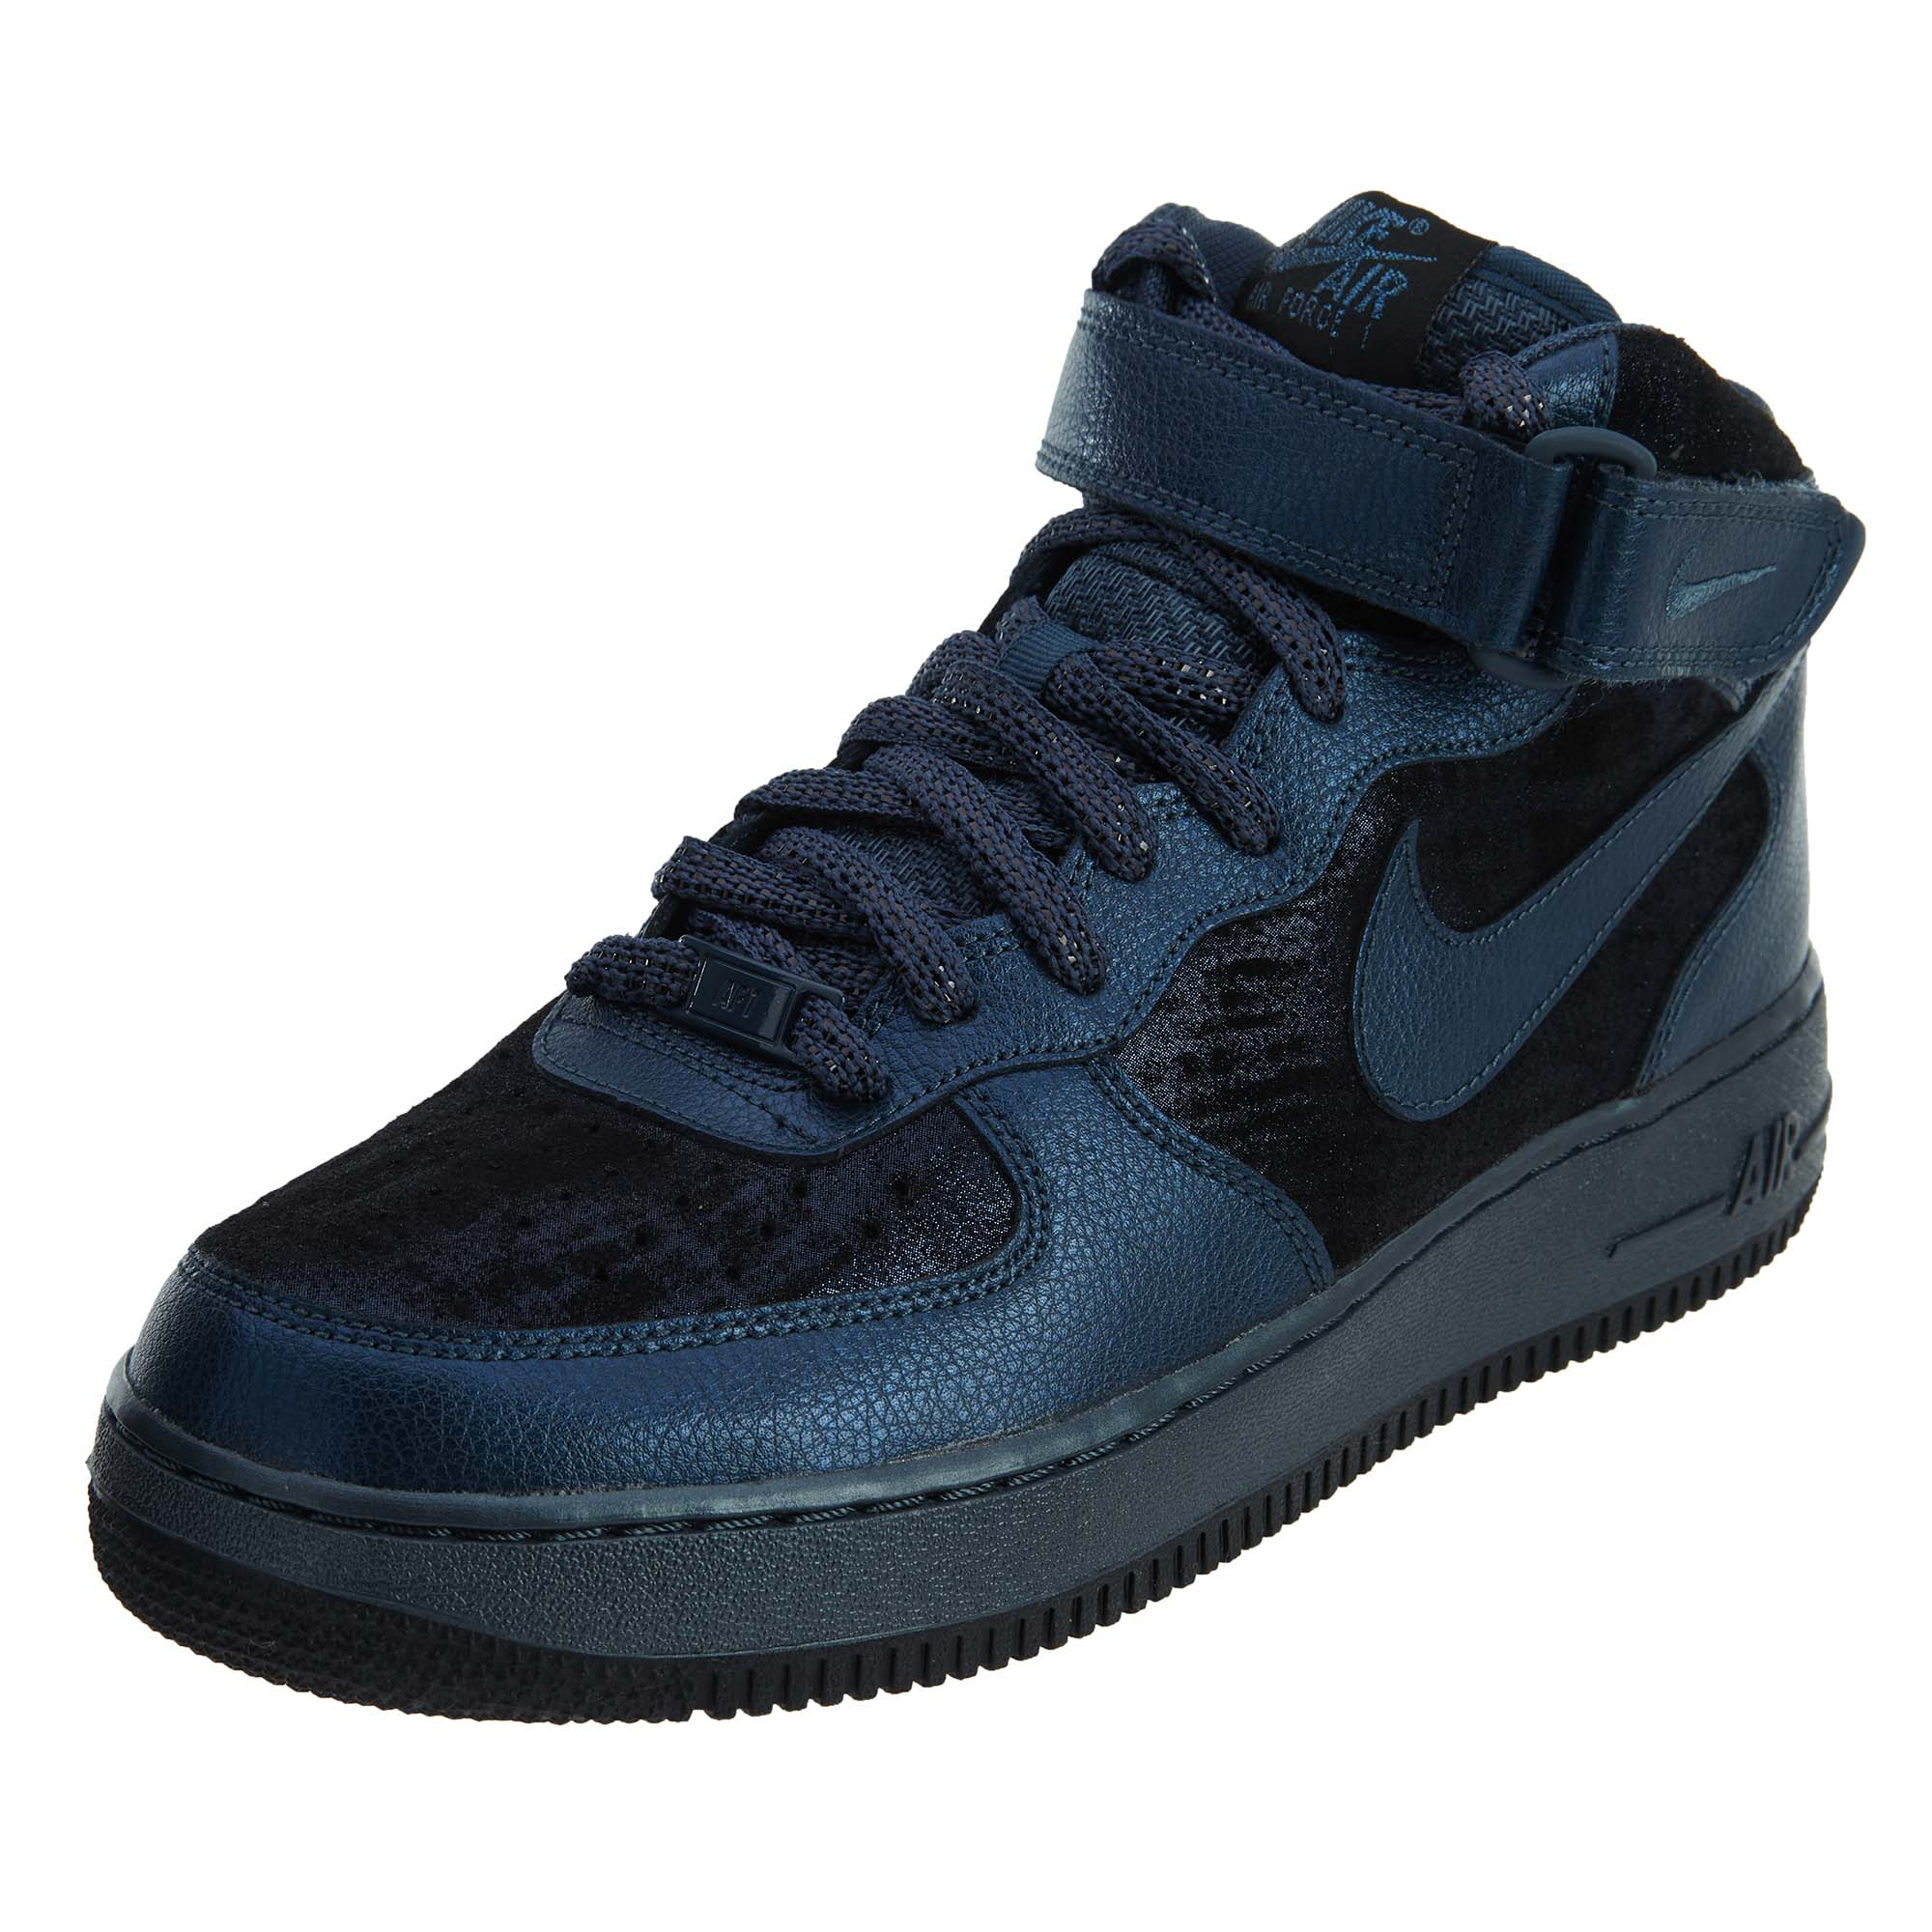 Nike Air Force 1 '07 Mid Prm Womens Style : 805292